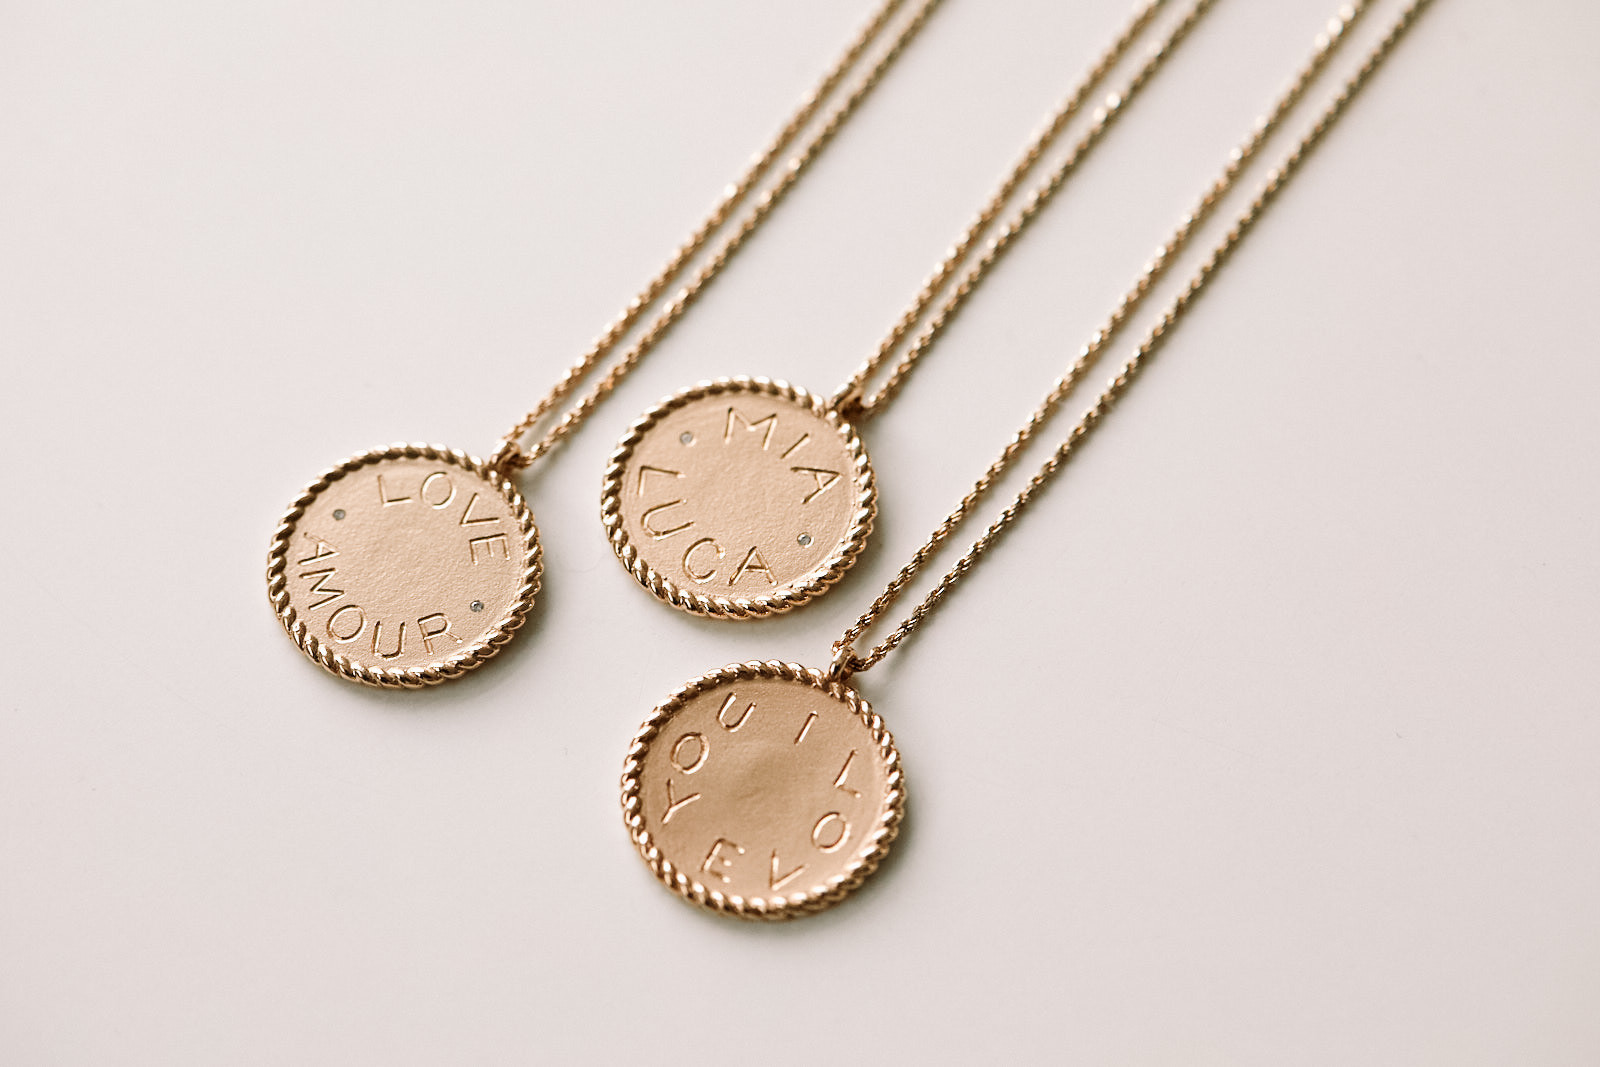 Ariel Gordon's Imperial Disc Pendant necklace.